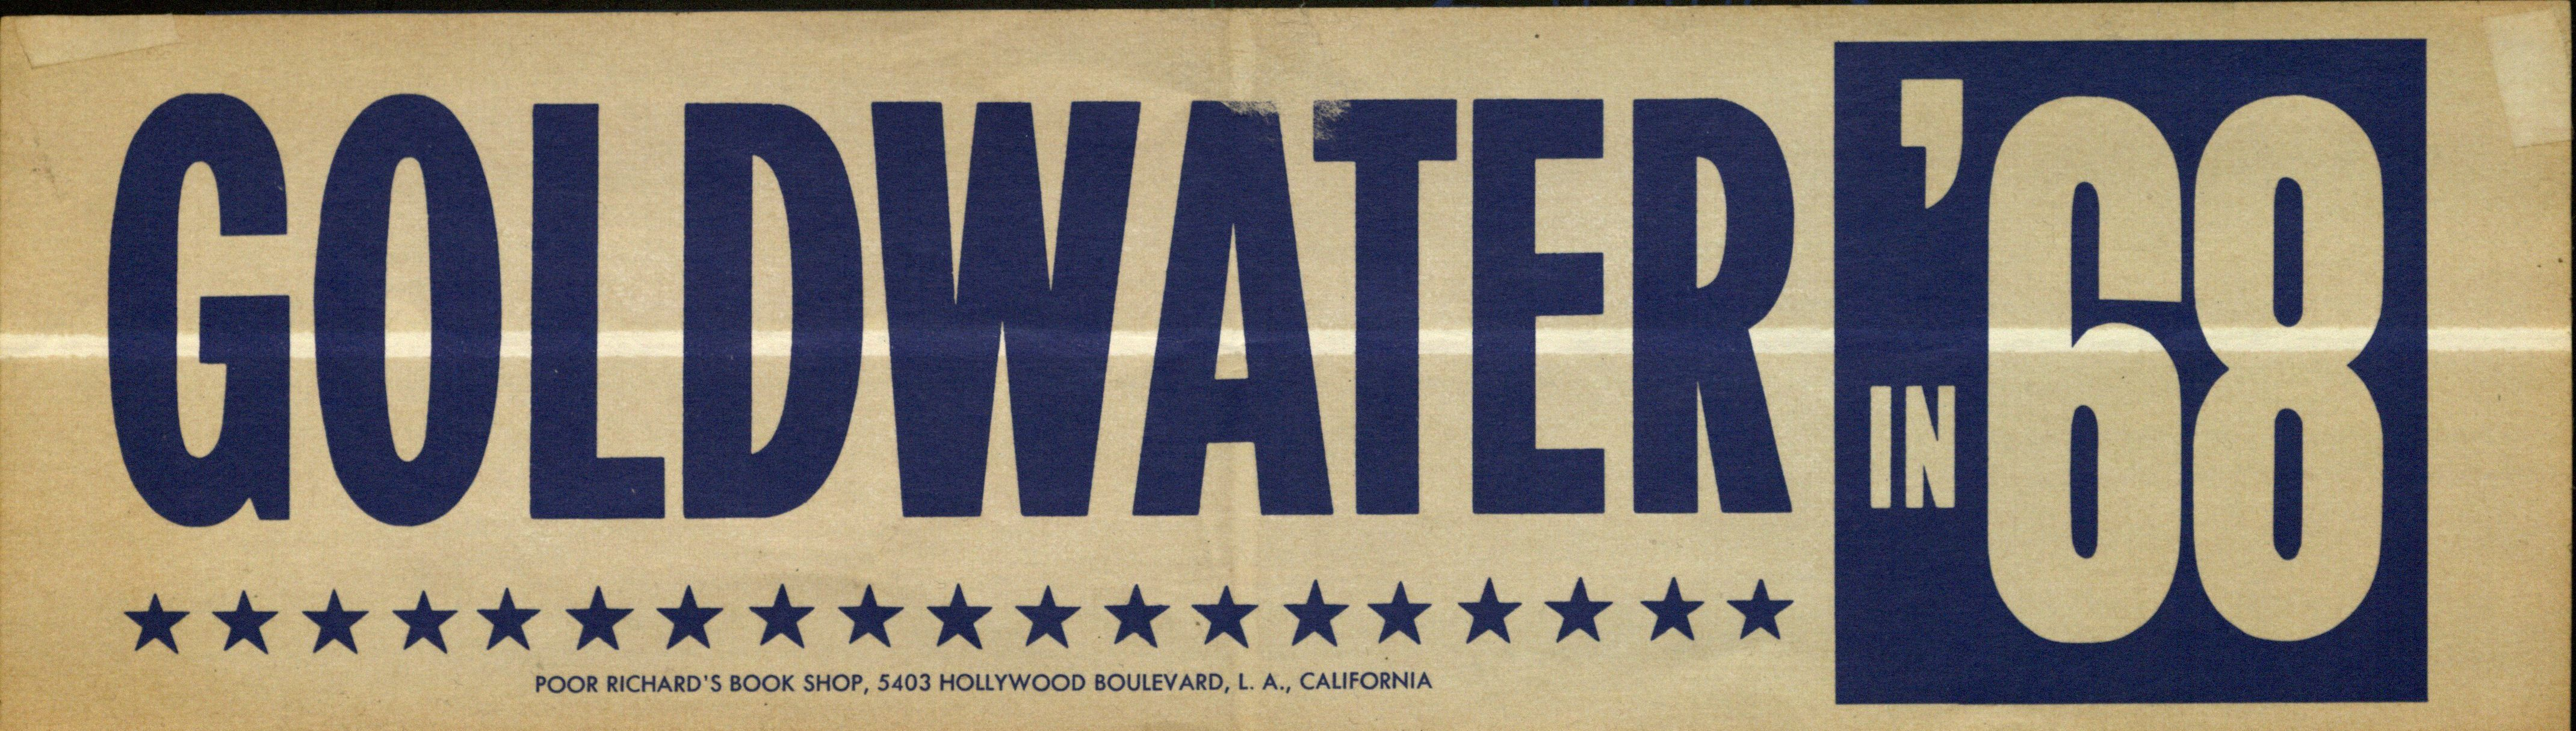 Bumper sticker: Goldwater '68